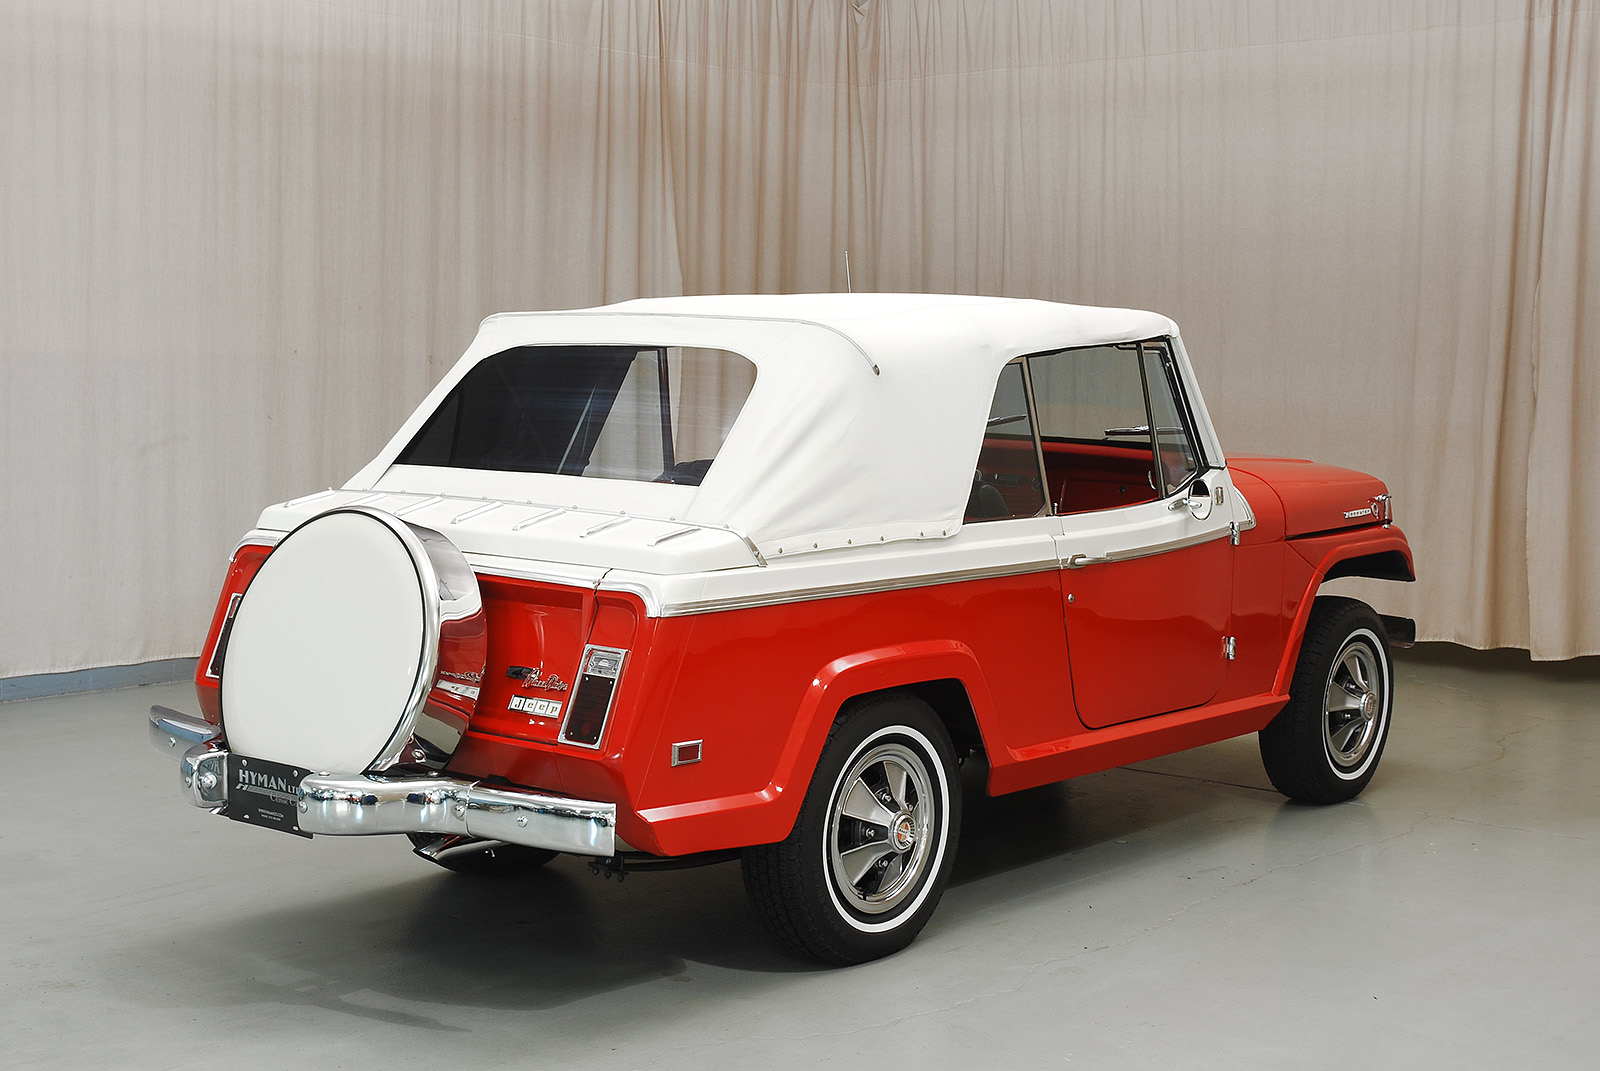 Cost To Paint A Car >> 1968 Jeep Jeepster Convertible | Hyman Ltd. Classic Cars